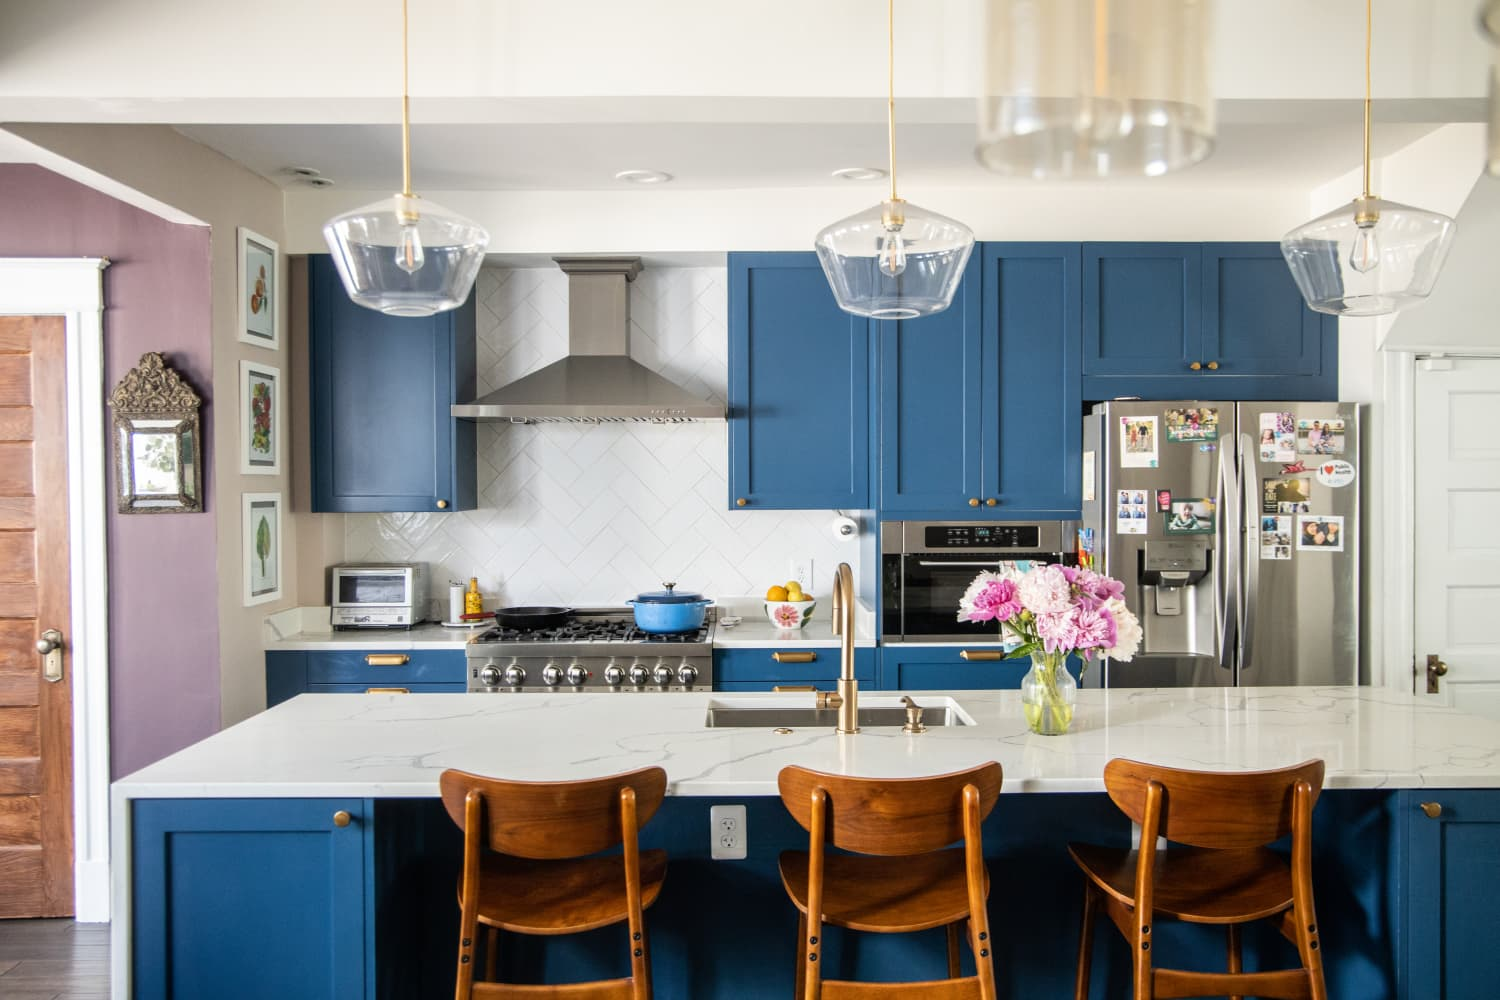 This Kitchen Renovation Cost $27,501 — Here's Where Every Penny Went